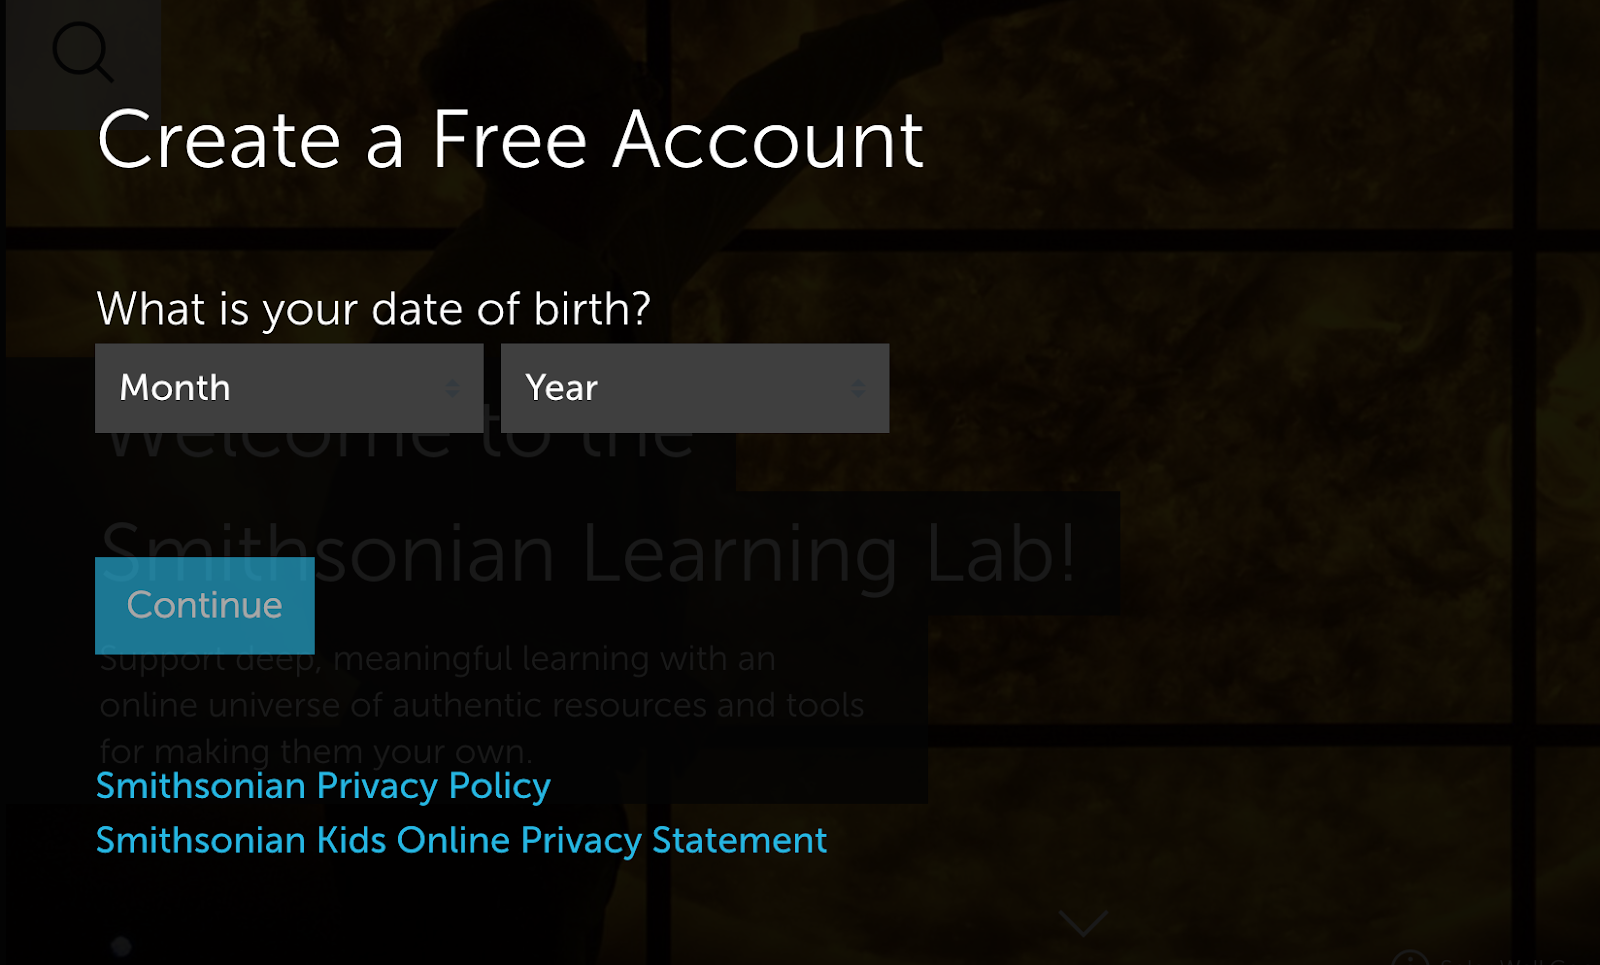 Image of the Create Free Account Screen asking the user to enter their birth date.